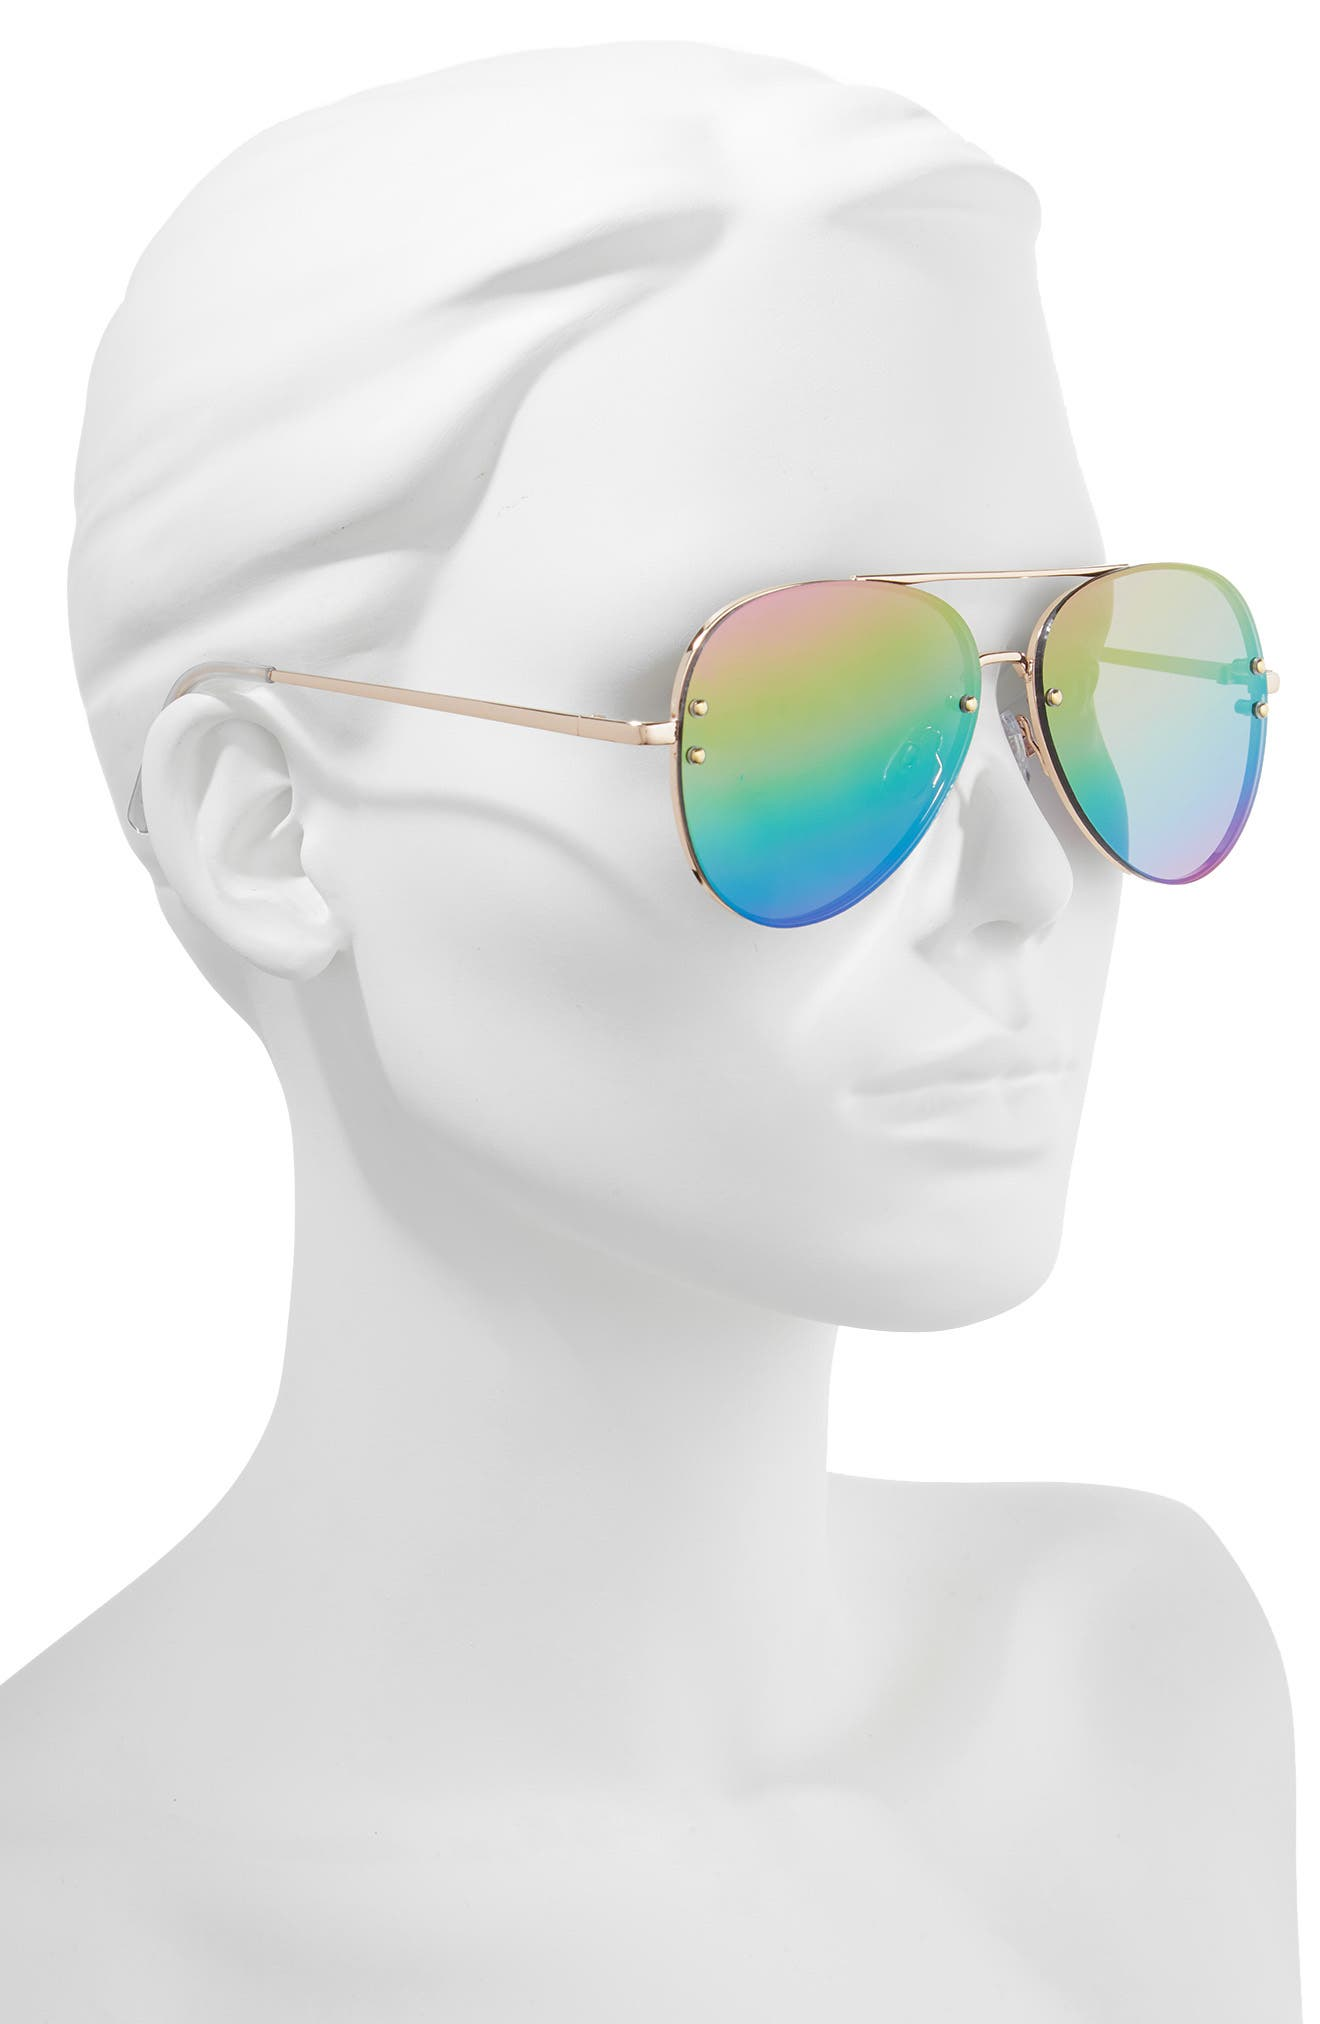 60mm Oversize Mirrored Aviator Sunglasses,                             Alternate thumbnail 2, color,                             Gold/Rainbow